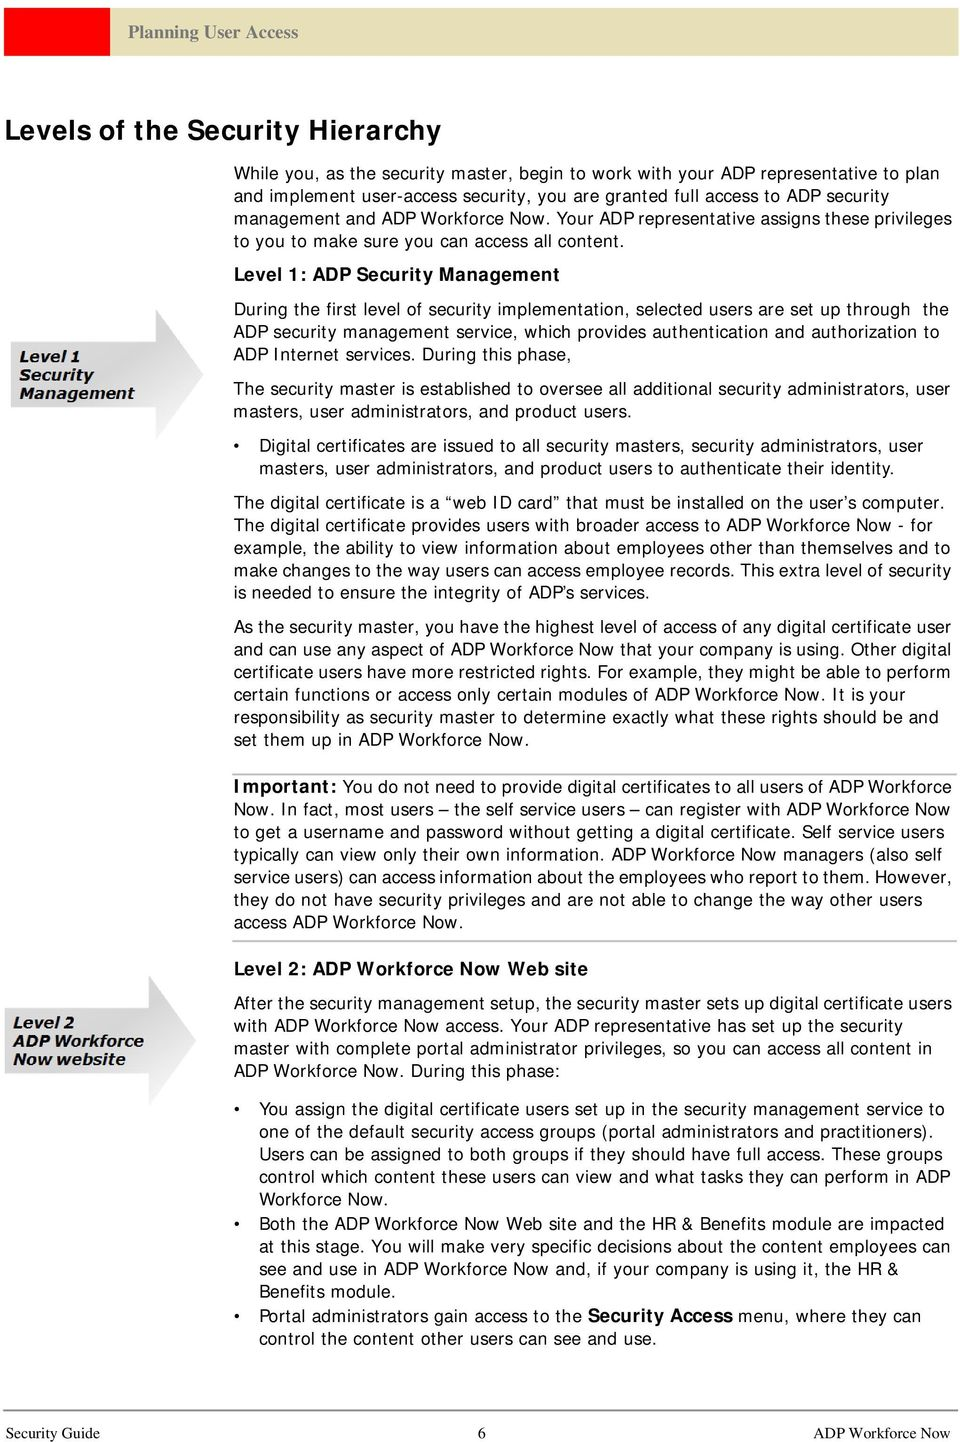 Level 1: ADP Security Management During the first level of security implementation, selected users are set up through the ADP security management service, which provides authentication and